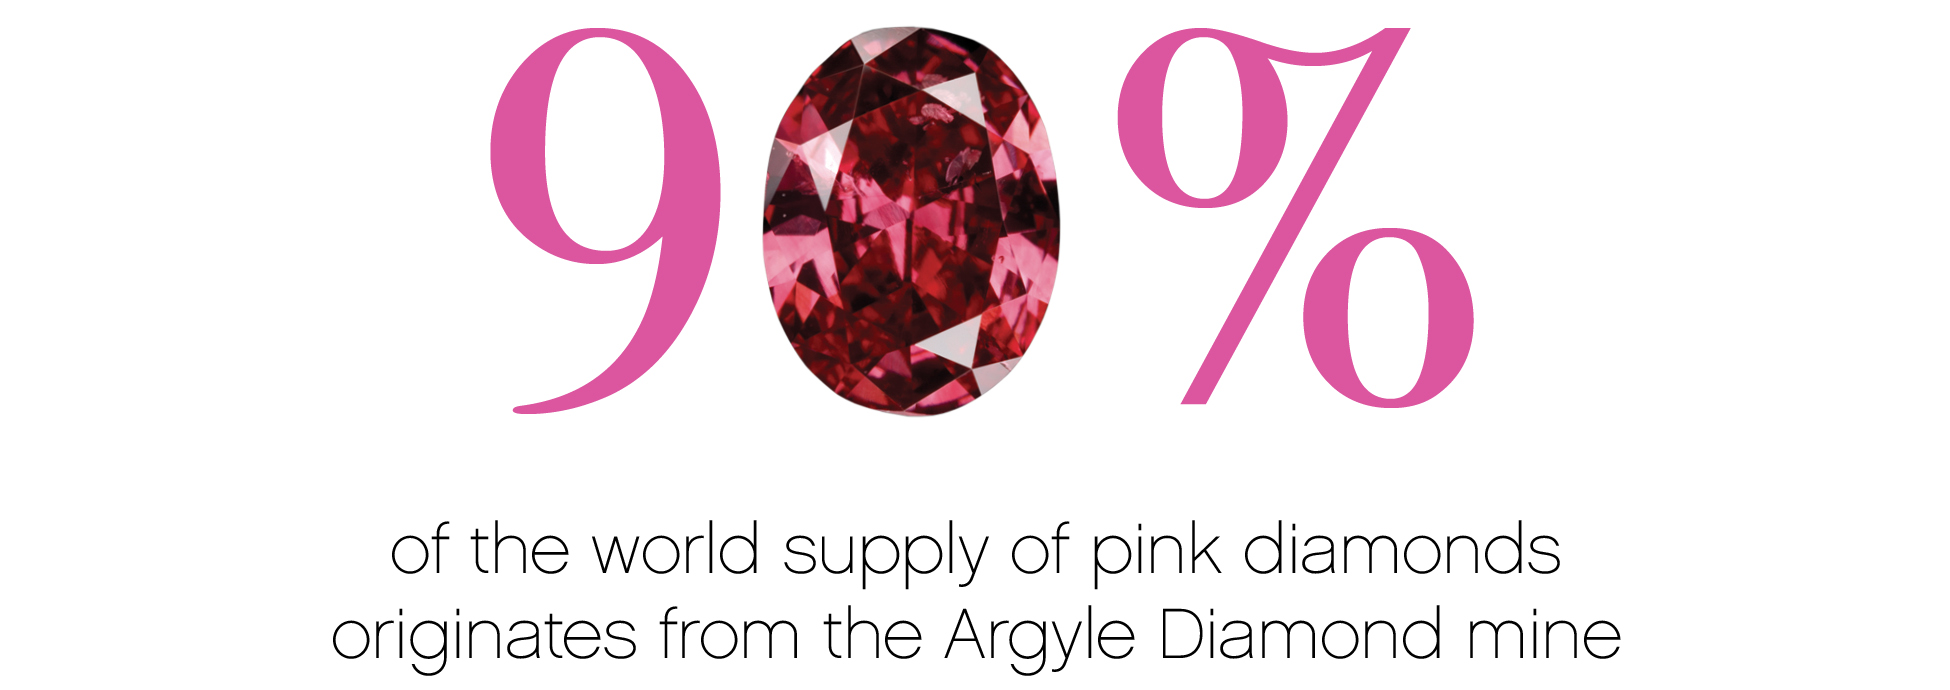 90 Percent of Pink Diamonds are from the Argyle mine